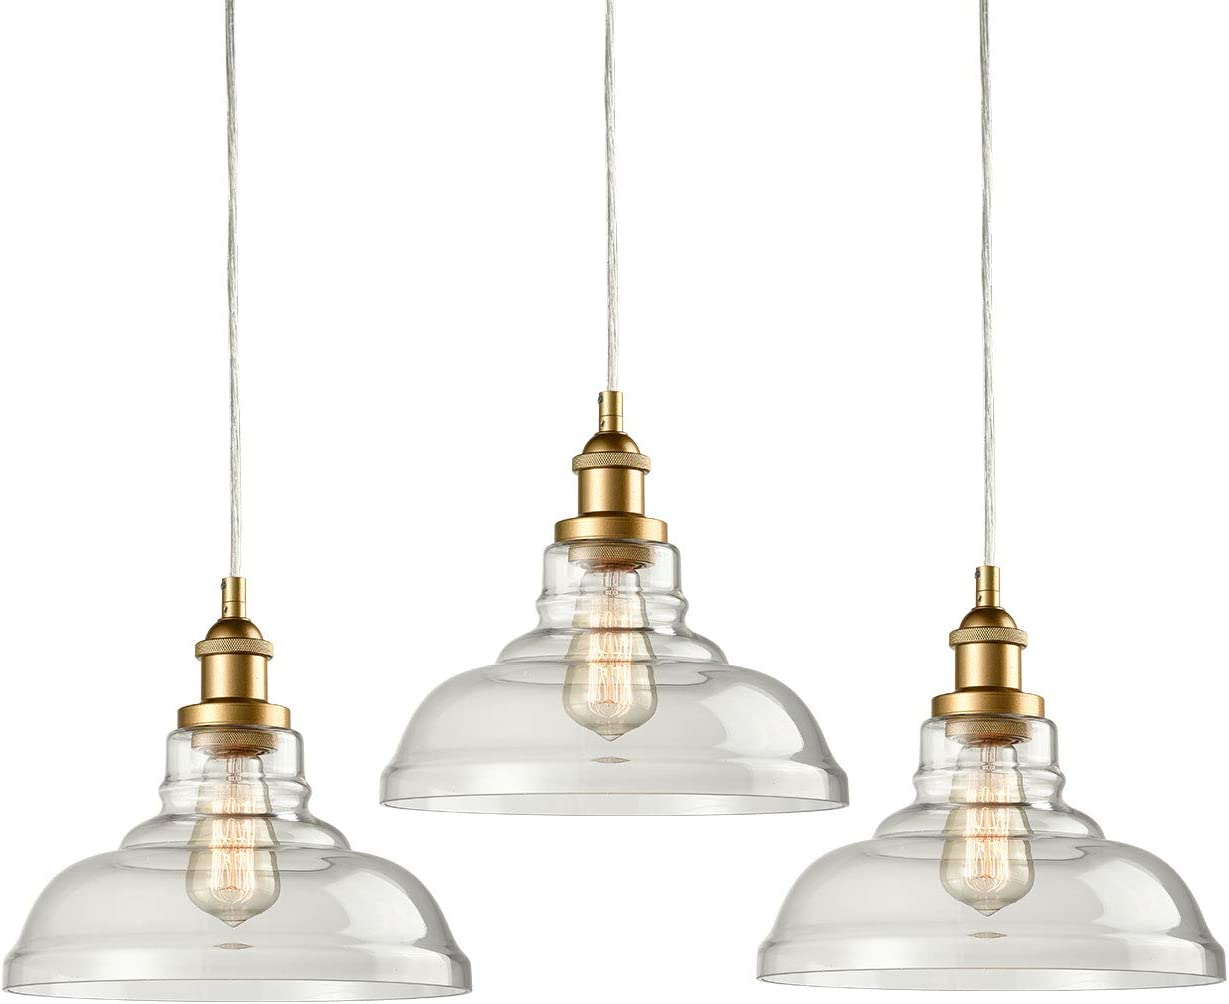 Modern Brass Clear Glass Pendant Lights 3 Pack Kitchen Island Lighting Gold Finish Hanging Lighting